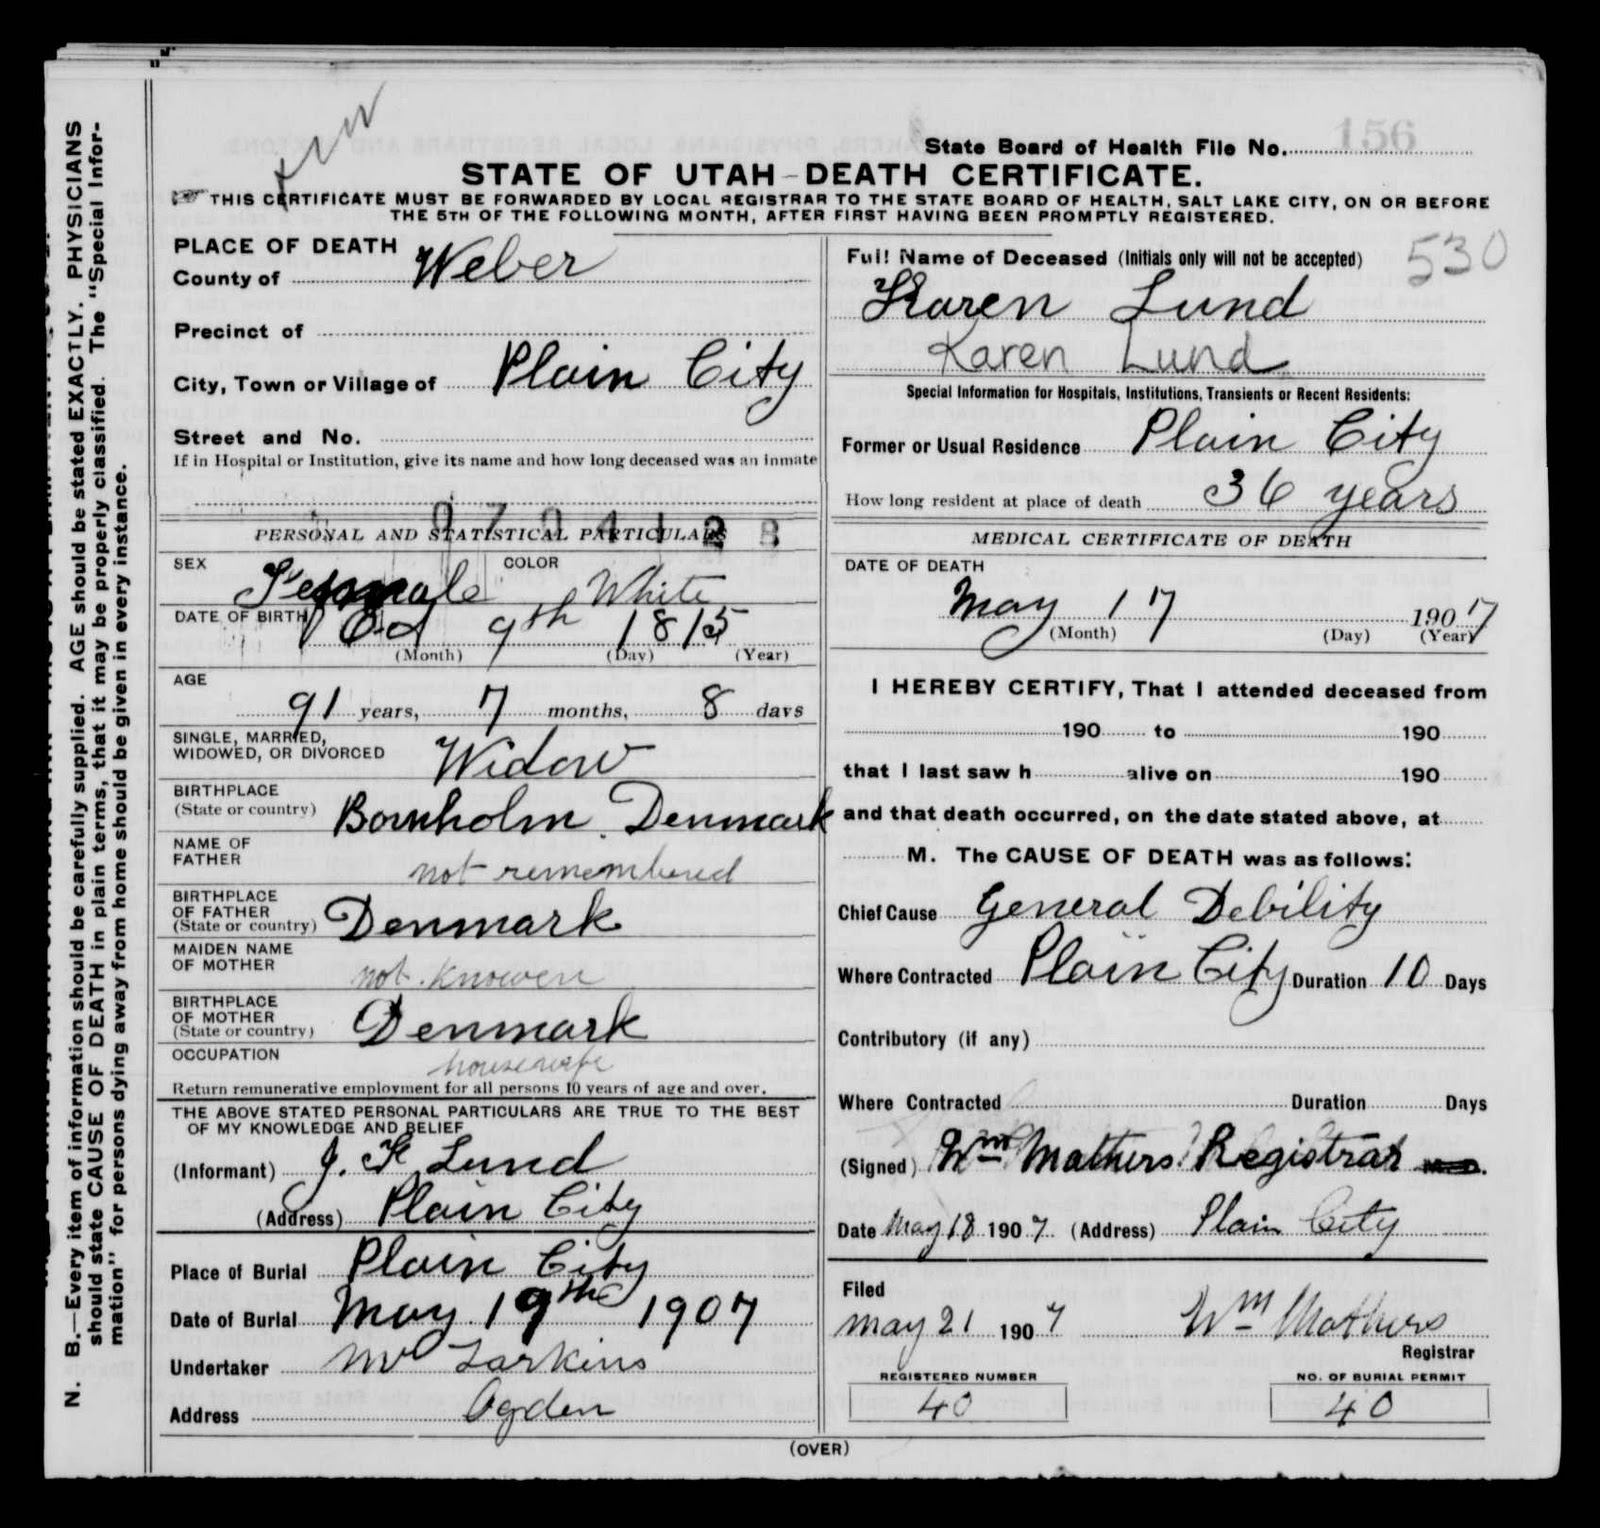 Deathcertificate lund2ckareng source state of utah utah death certificates 1904 1956 entry no 12318 karen lund 17 may 1907 digital images utah state archives and records service xflitez Image collections